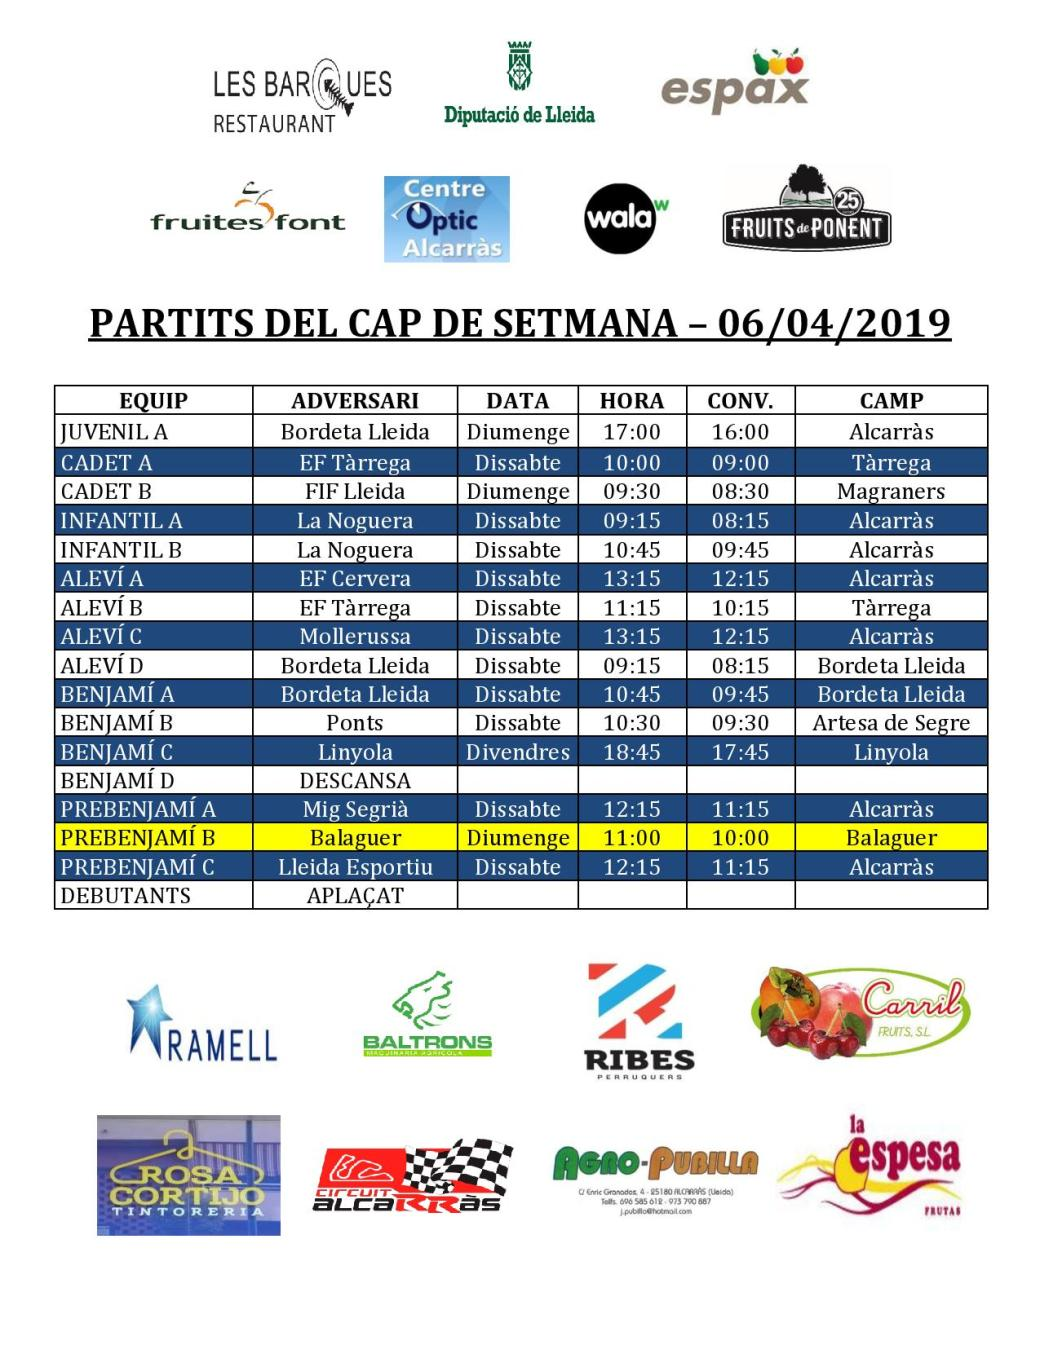 PARTITS 6 i 7 ABRIL 2019-page-001